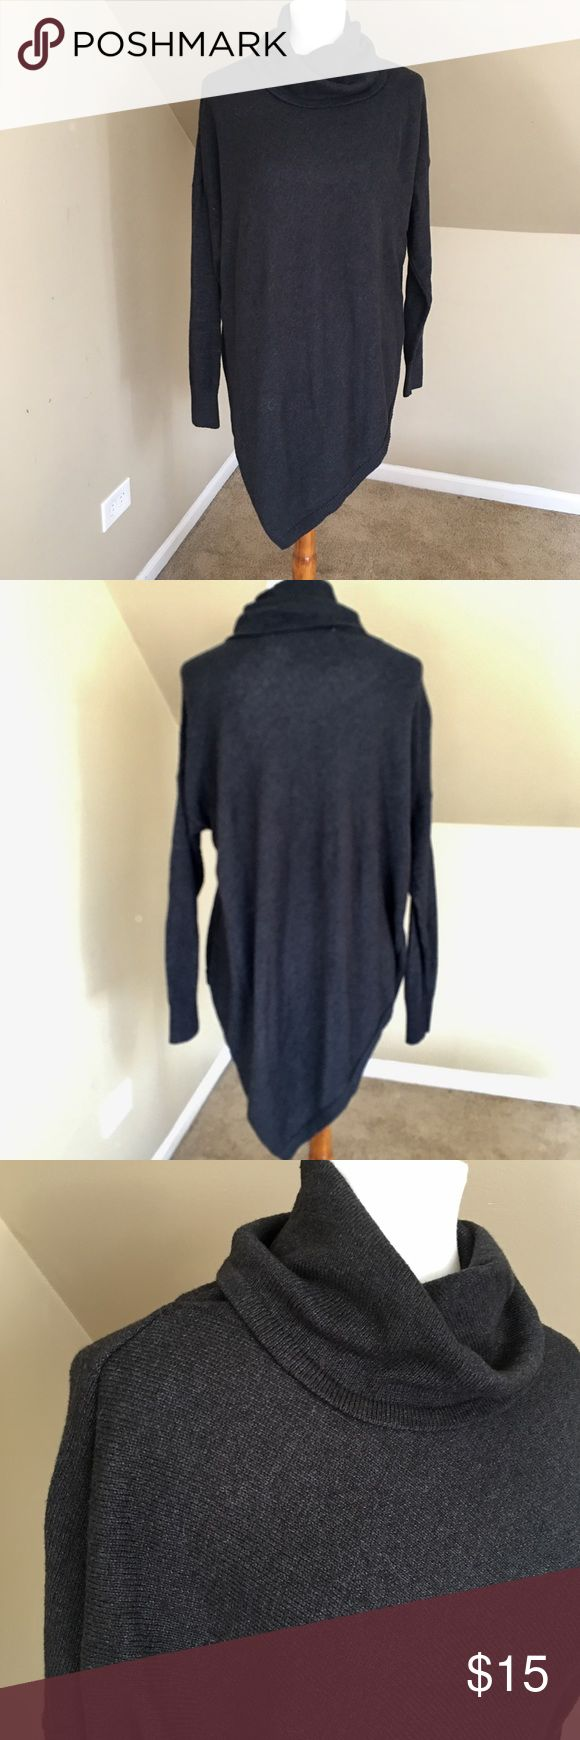 Old Navy Tunic Sweater Asymmetrical hem, soft, comfy Tunic sweater.  So cute paired with leggings, tall boots or skinnny jeans.  Great condition. Old Navy Sweaters